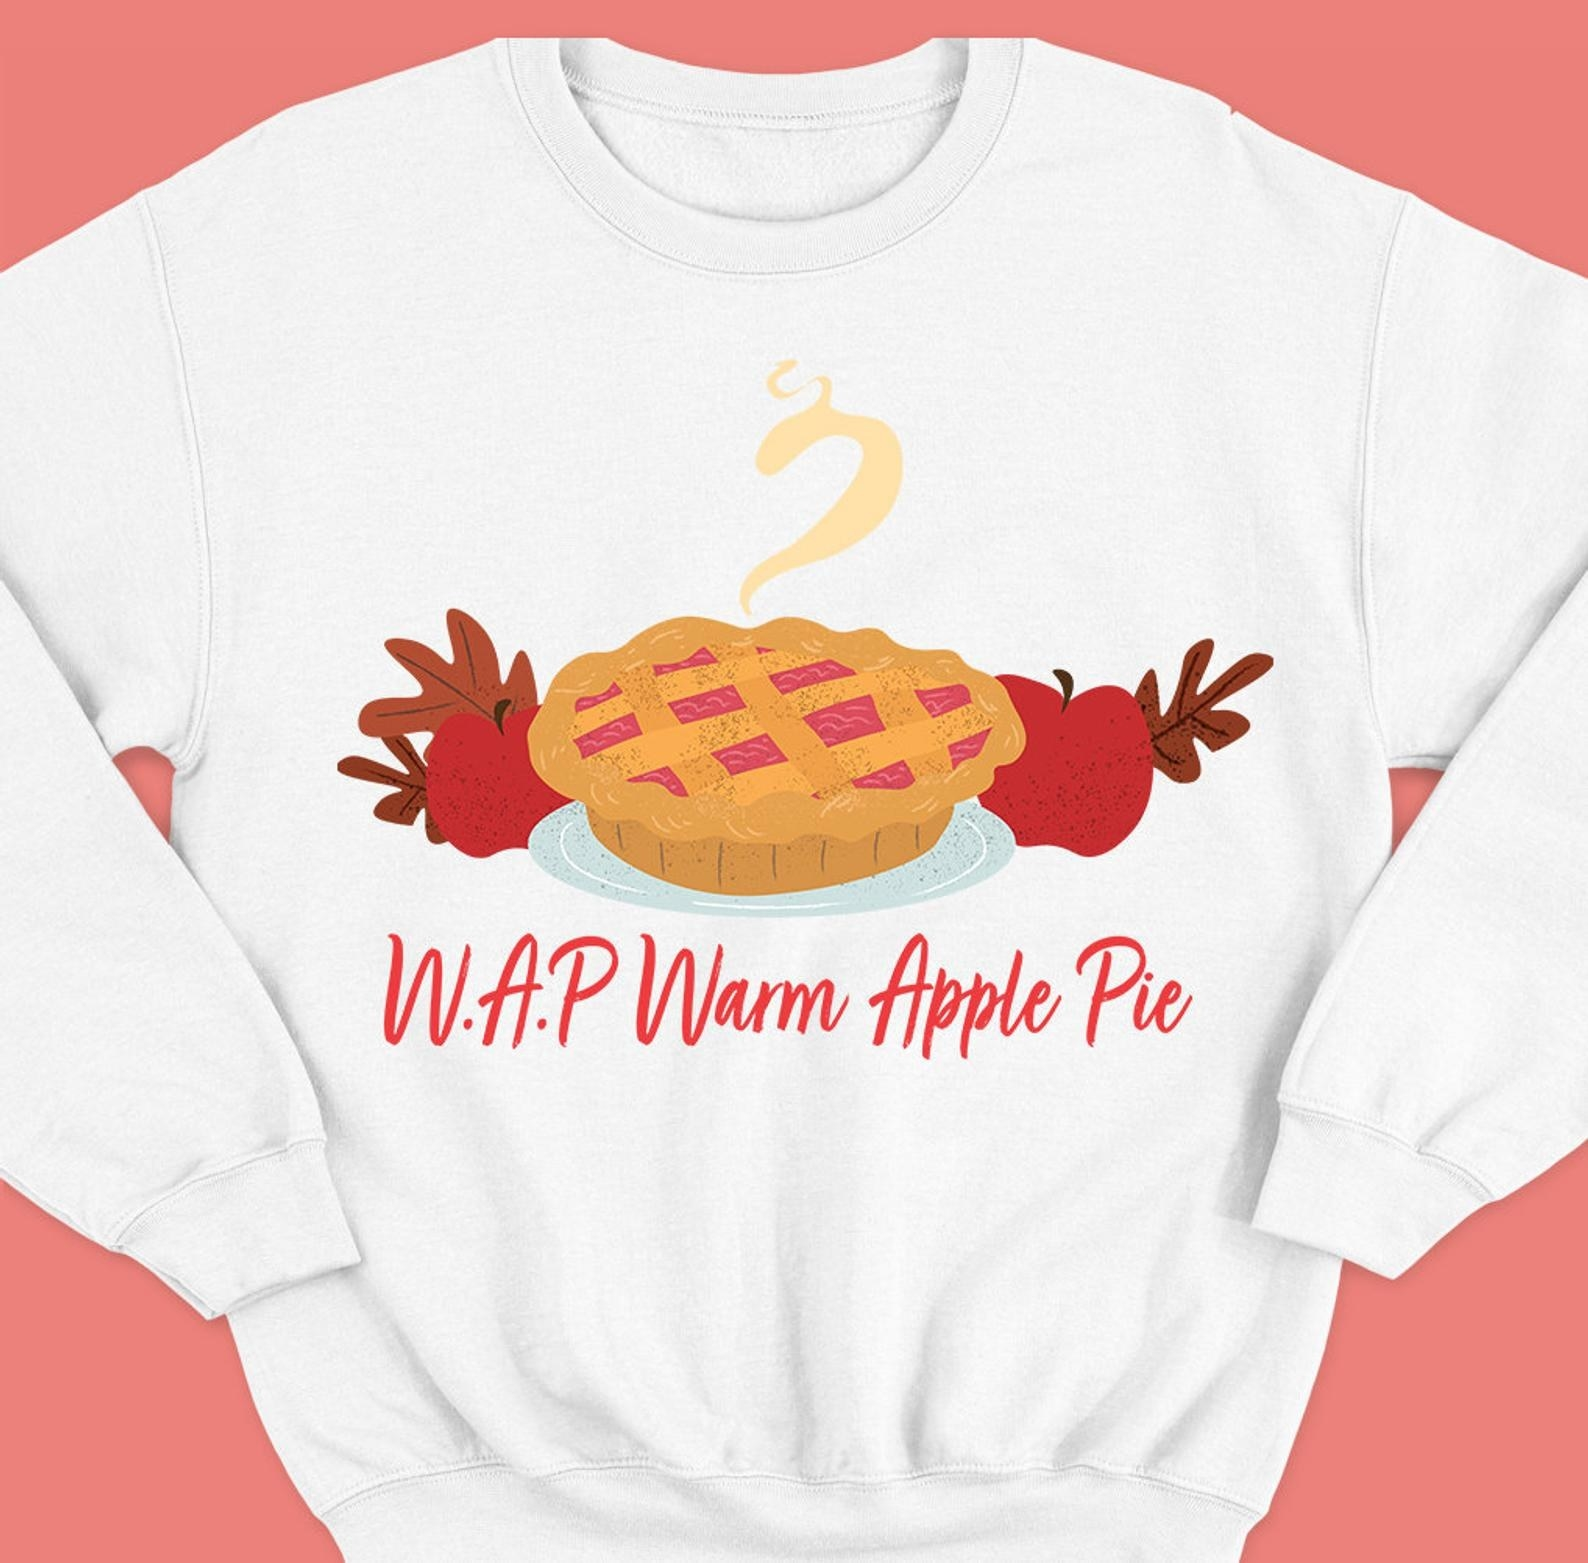 "the sweater making a pun with Cardi B's song WAP, where WAP here stands for ""Warm Apple Pie"" with art of an apple pie"